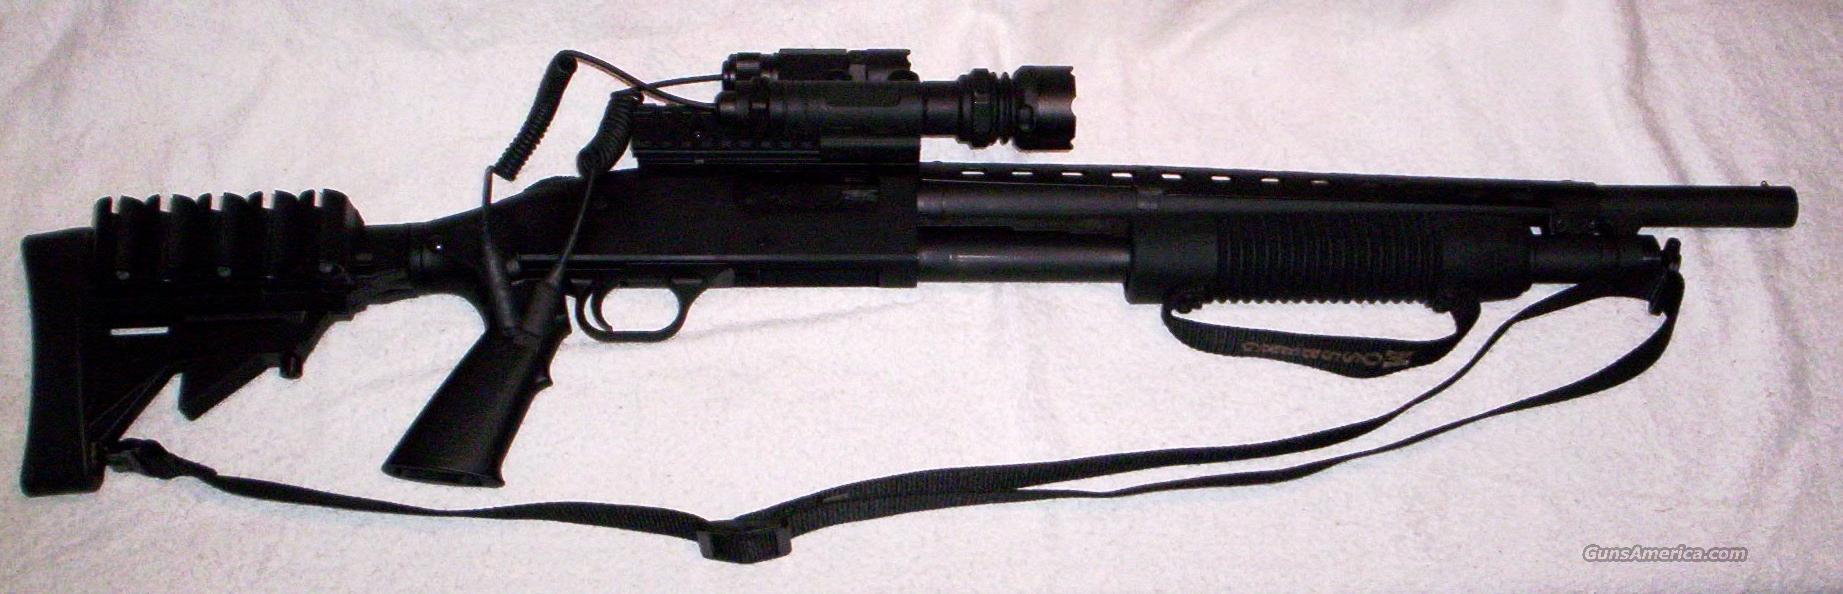 MOSSBERG TACTICAL 500A PERSUADER 12 GAUGE PUMP  Guns > Shotguns > Mossberg Shotguns > Pump > Tactical